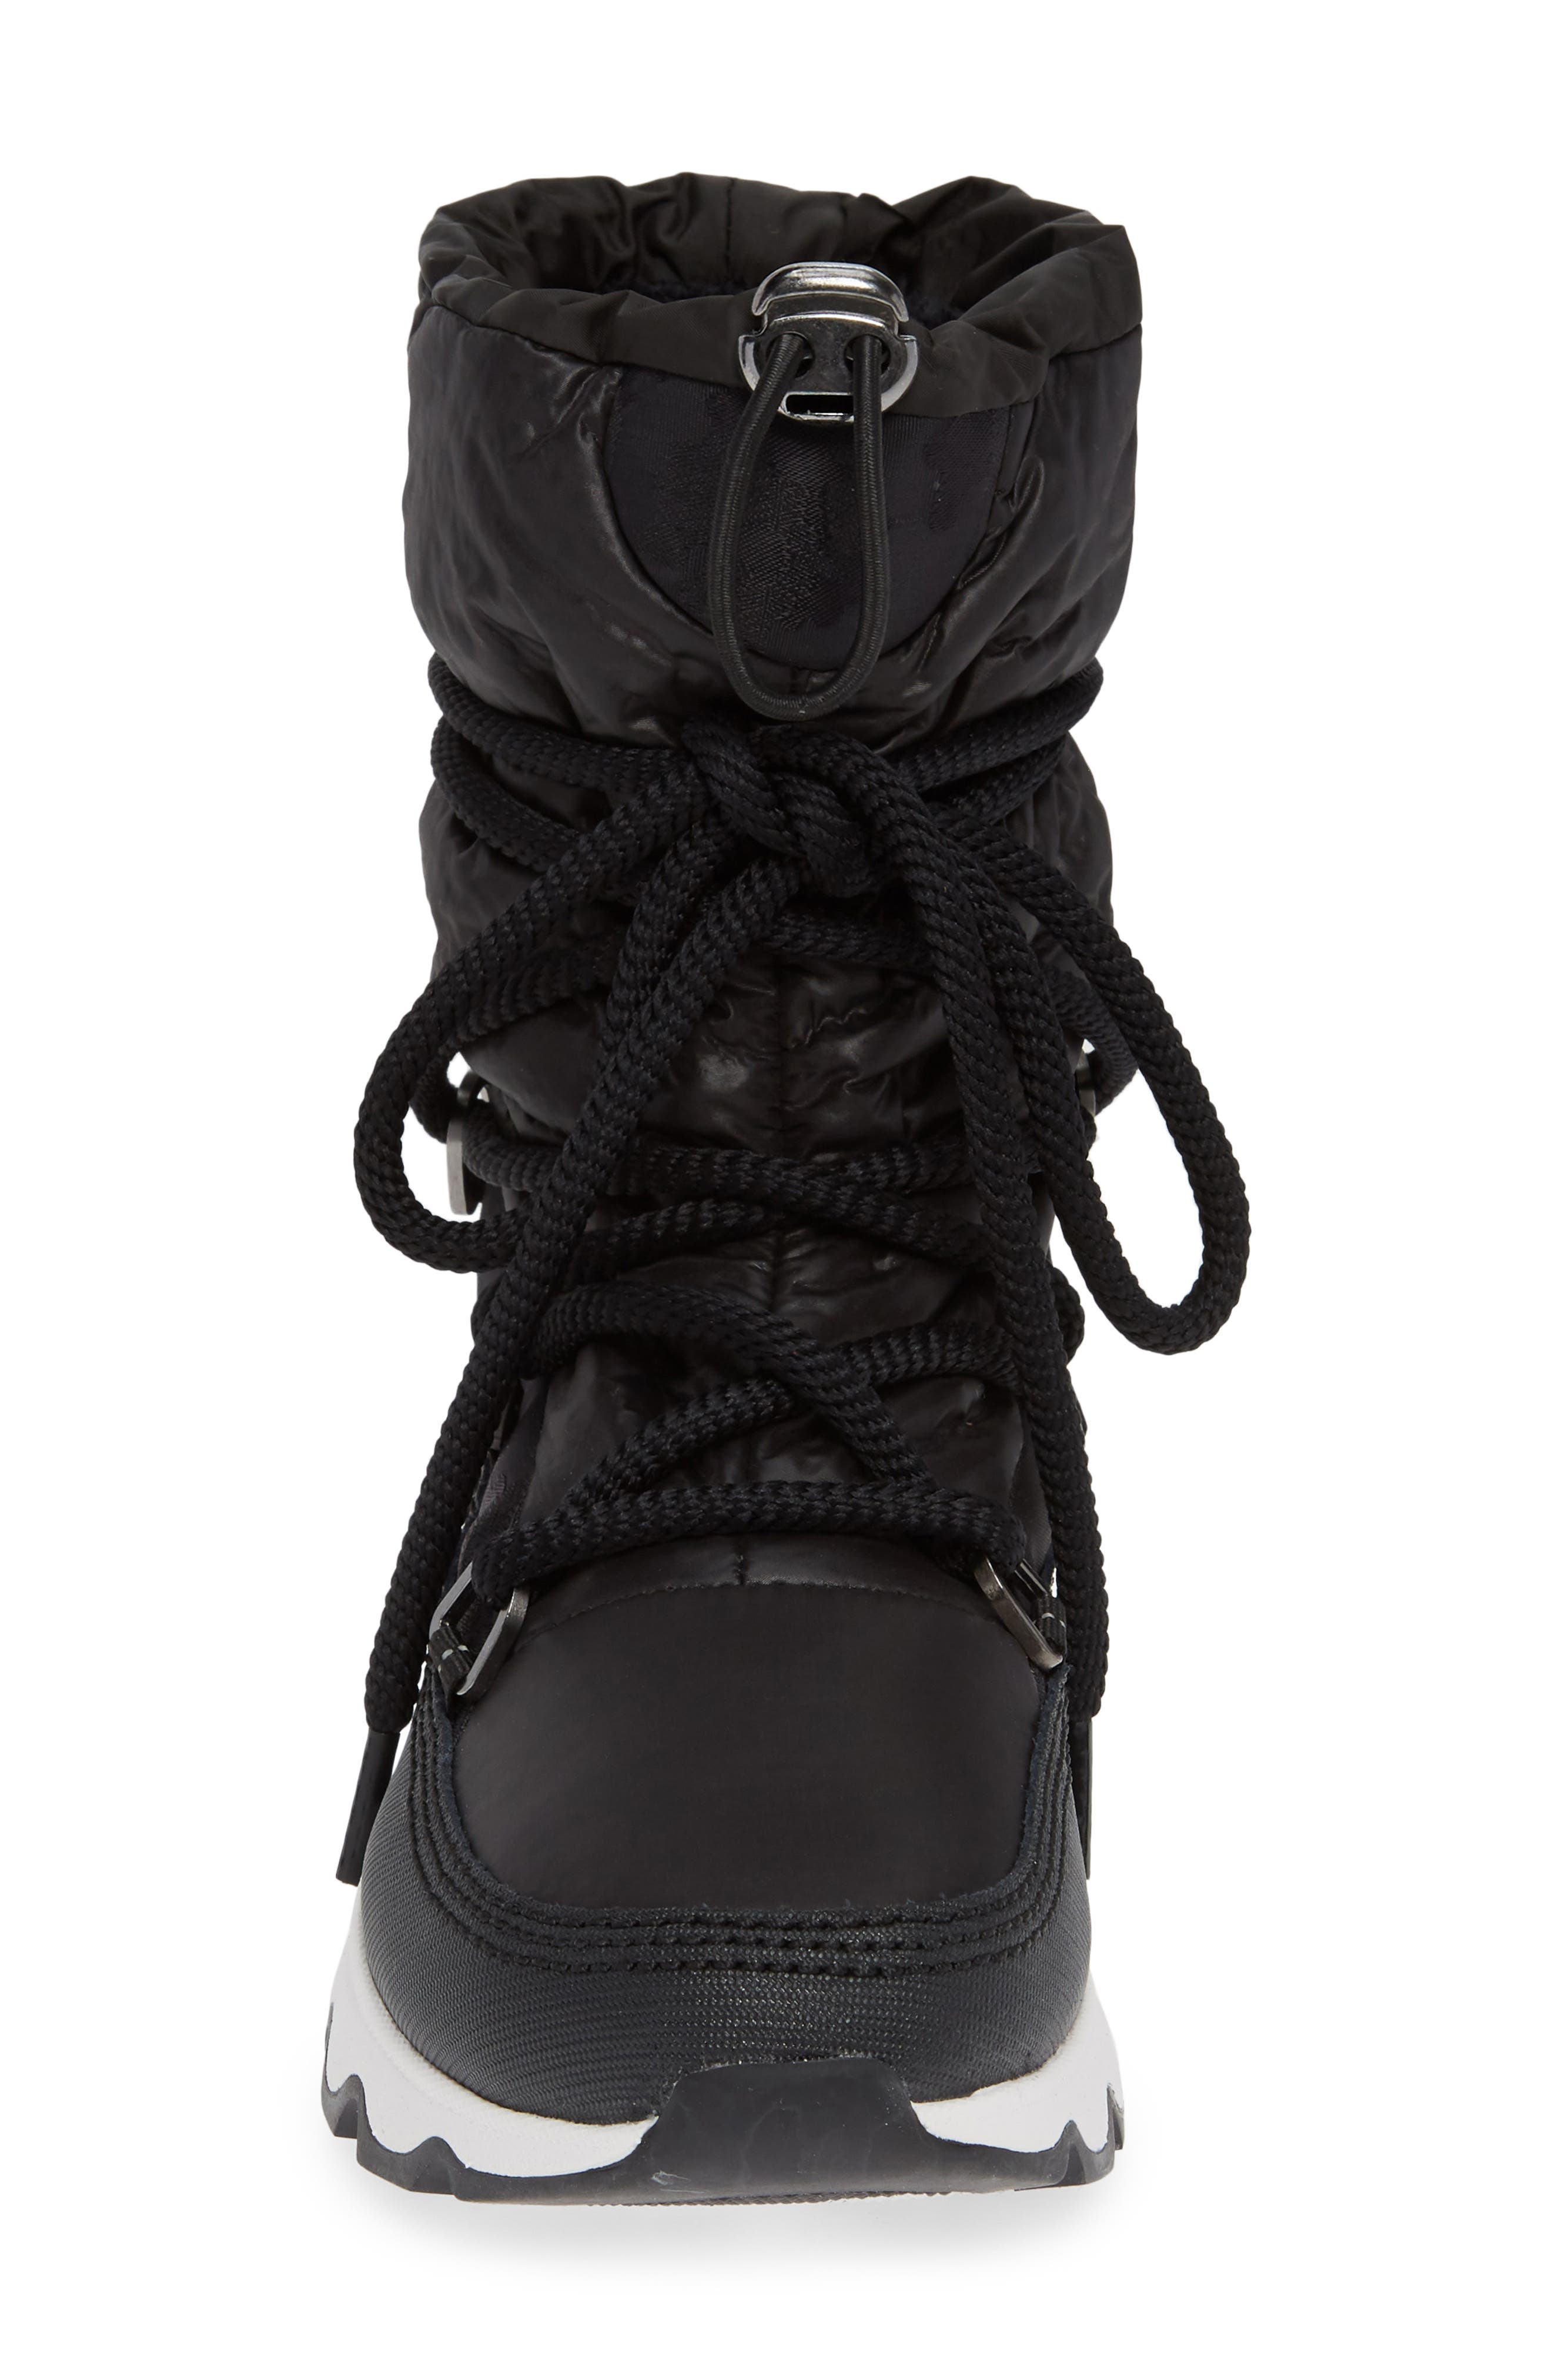 Kinetic Waterproof Insulated Winter Boot,                             Alternate thumbnail 4, color,                             CAMO/ BLACK/ WHITE